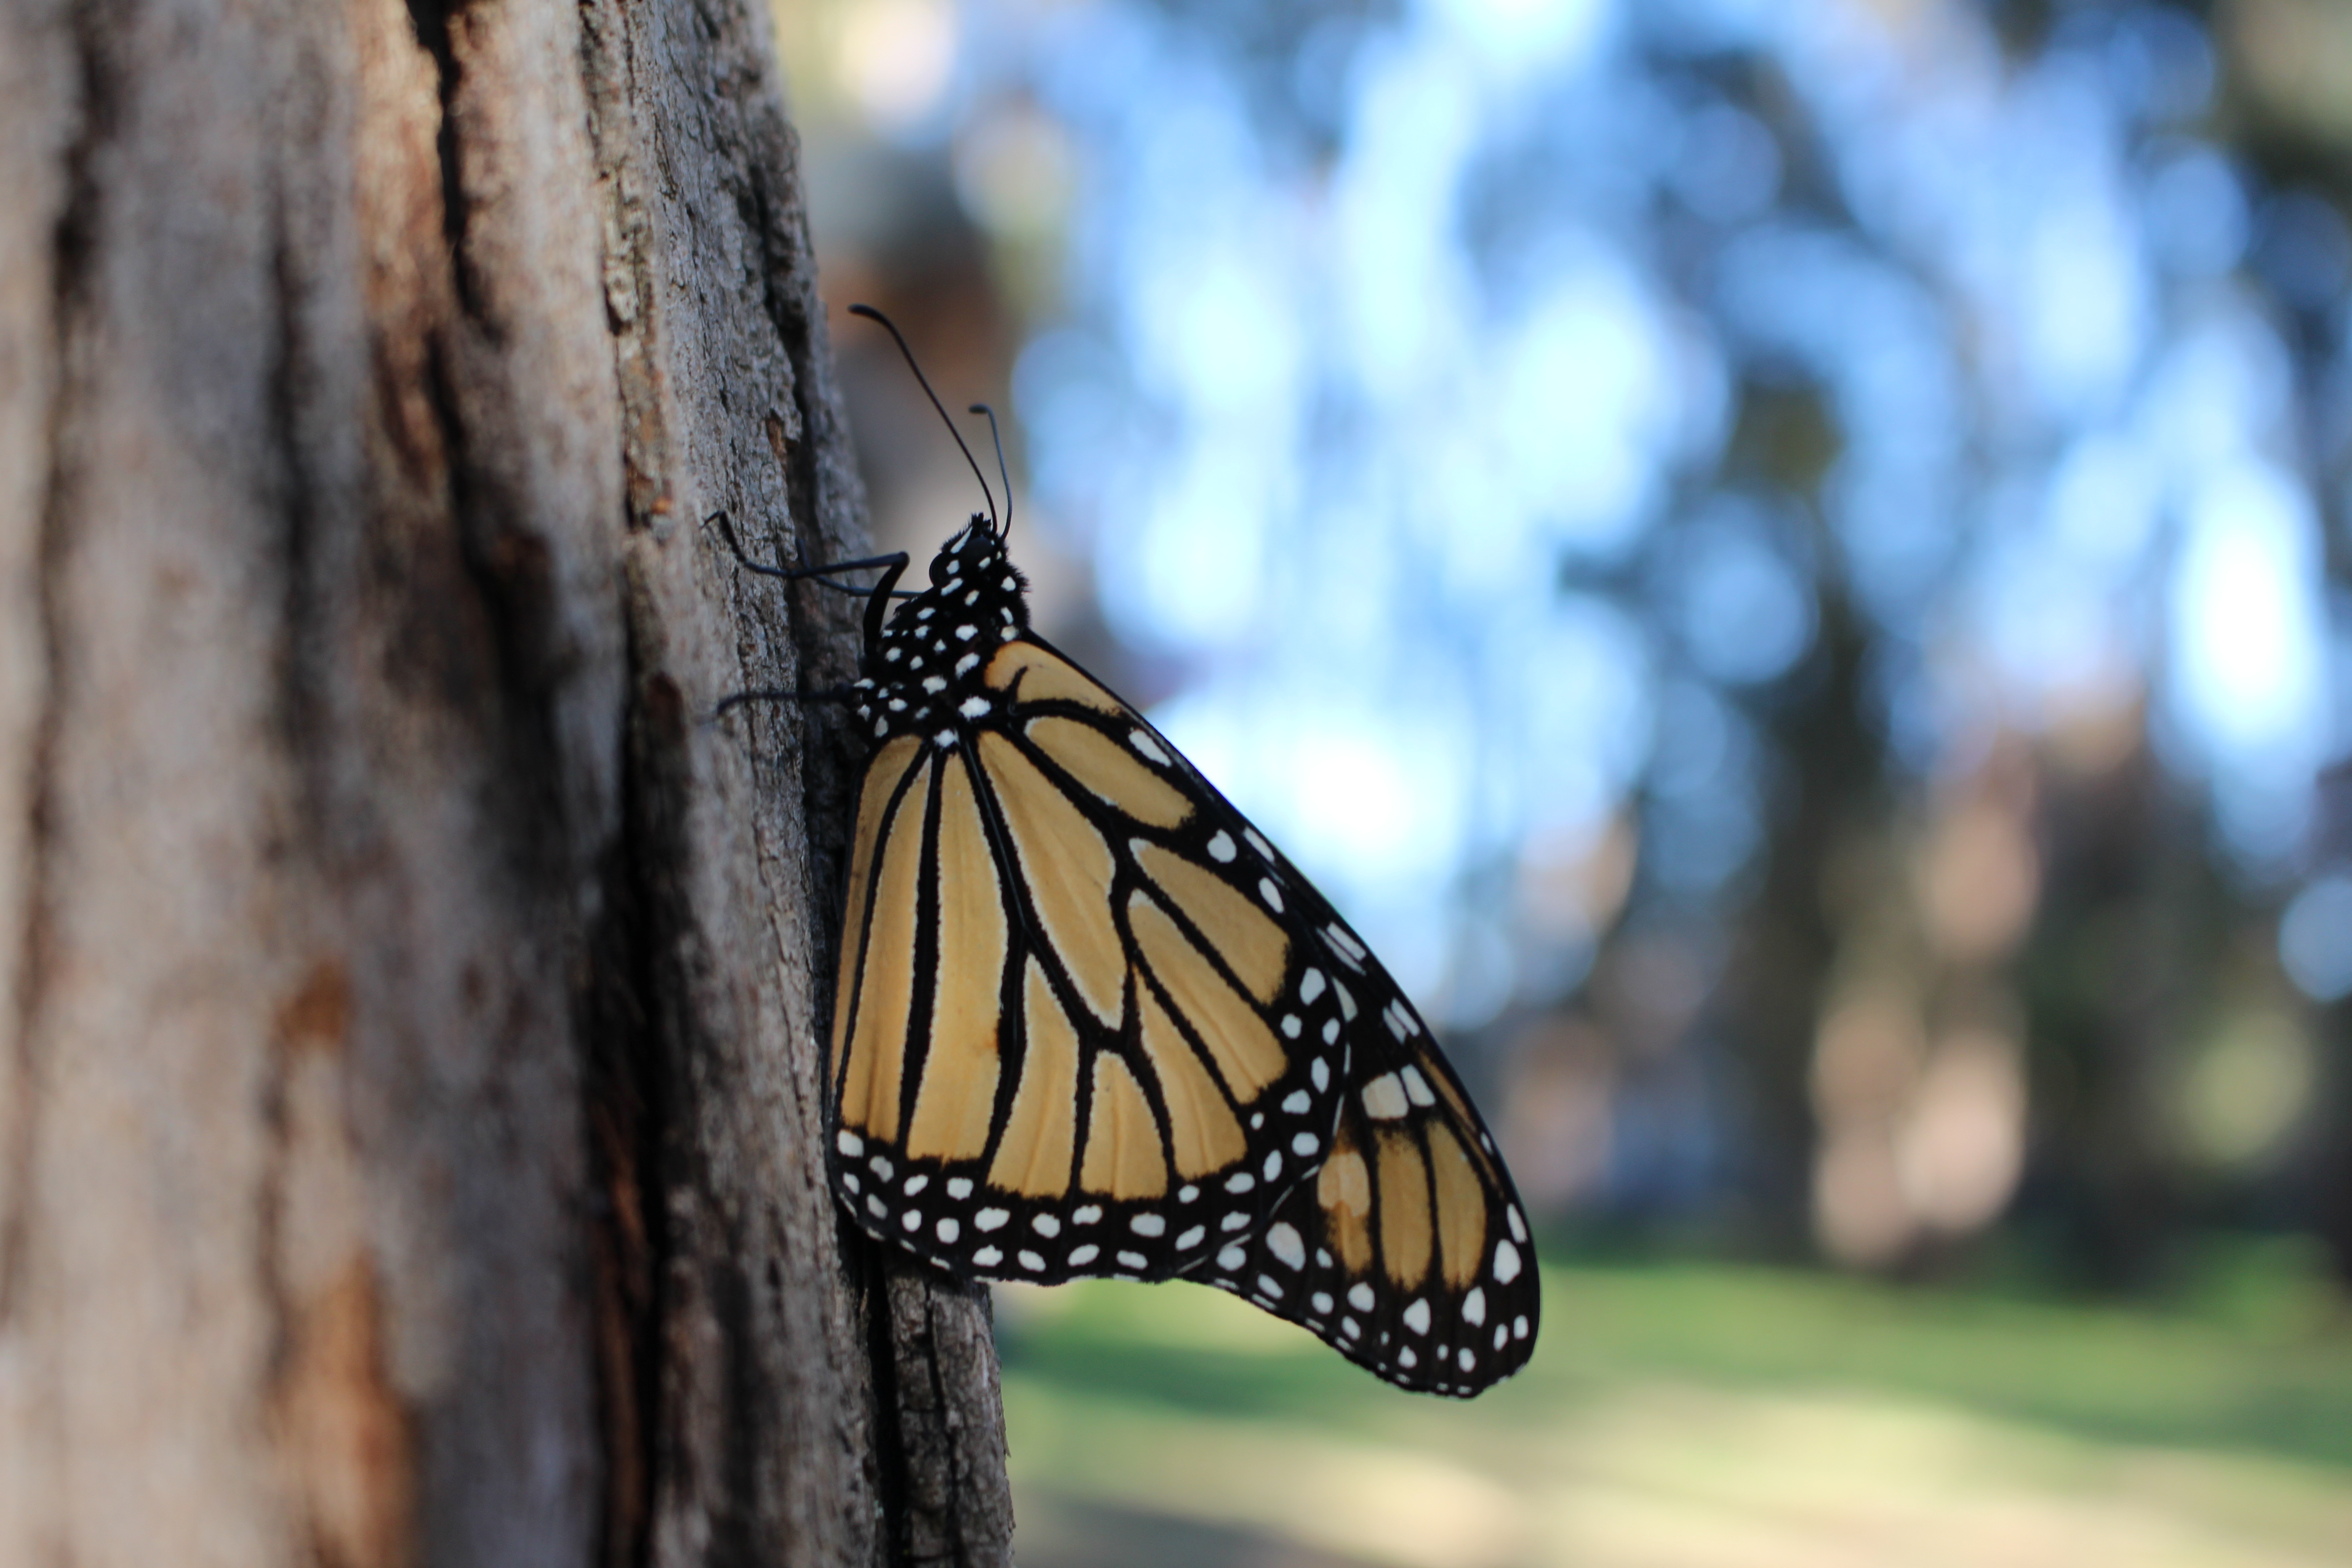 A monarch clings to a tree trunk, in a dimly-lit landscape.